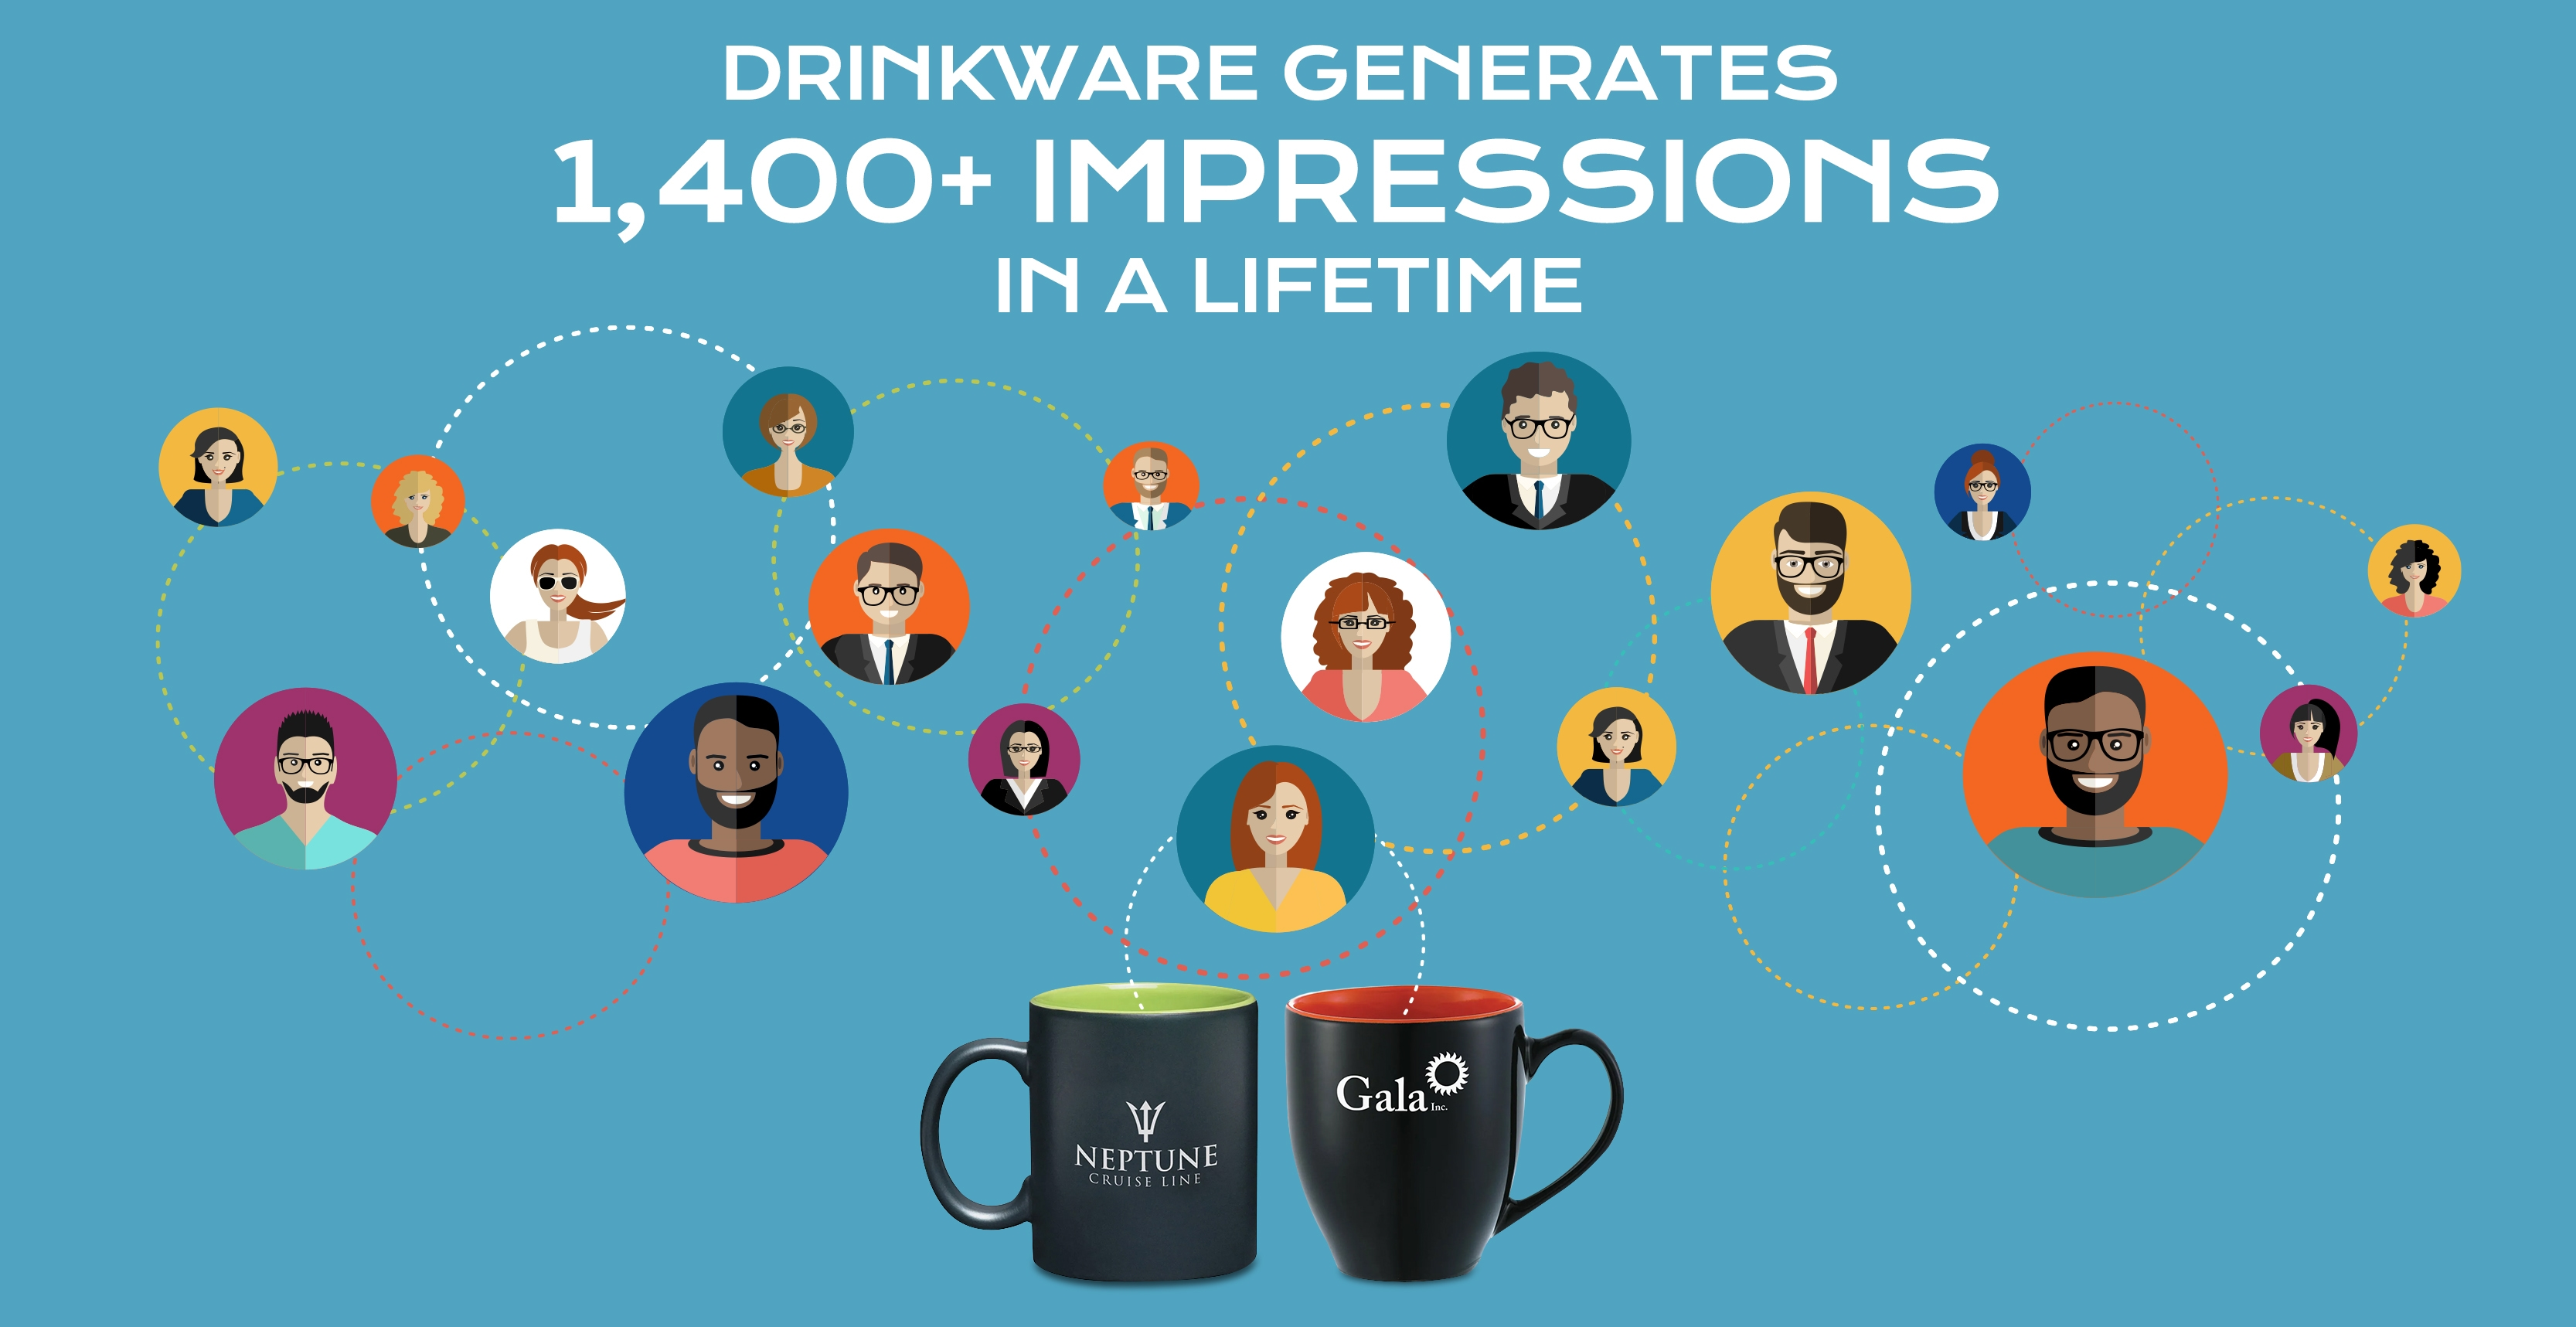 Drinkware creates more than 1400 impressions in a lifetime